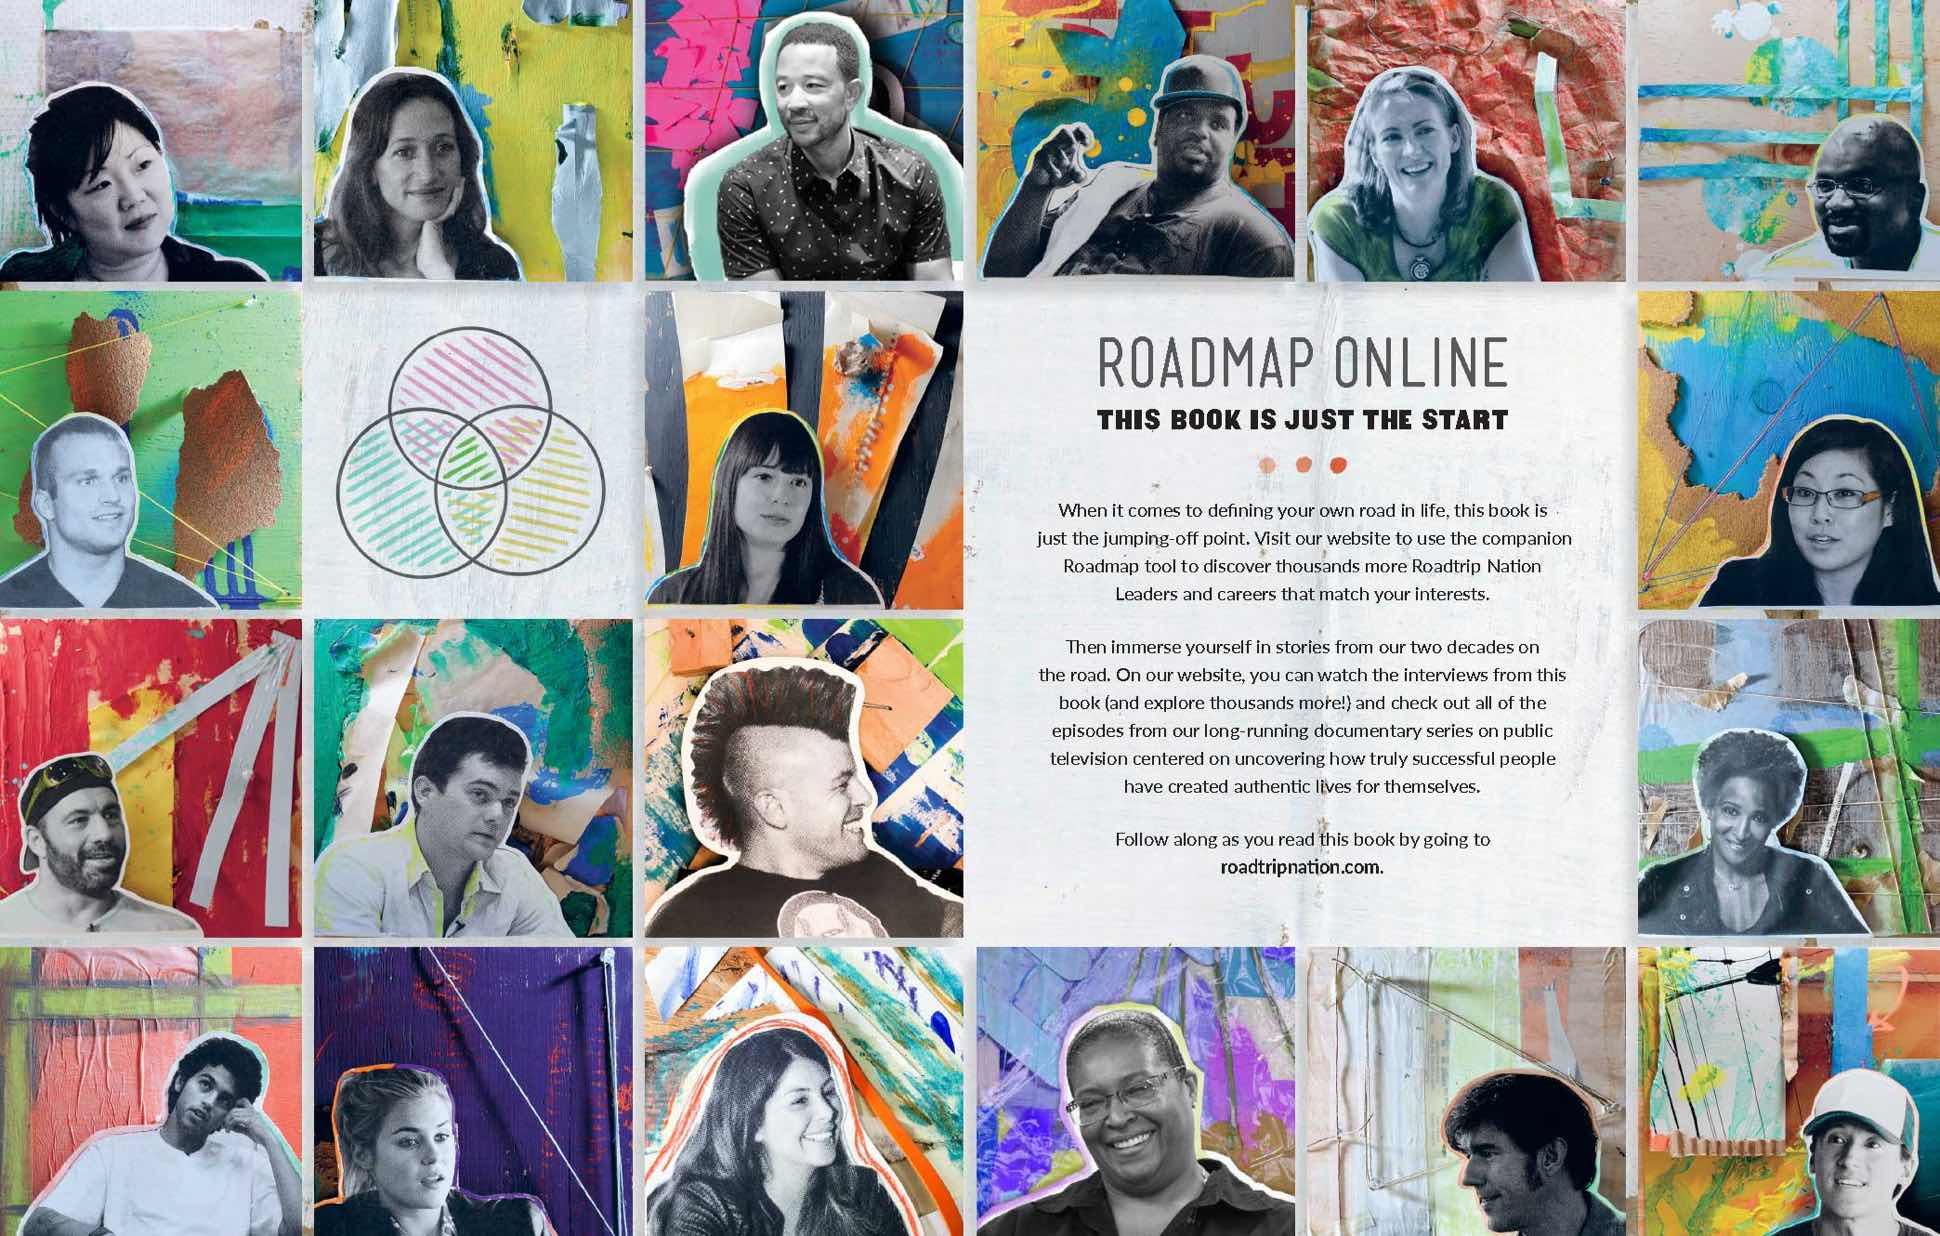 Image from the Roadmap book titled 'Roadmap Online', featuring collages of people featured in the book